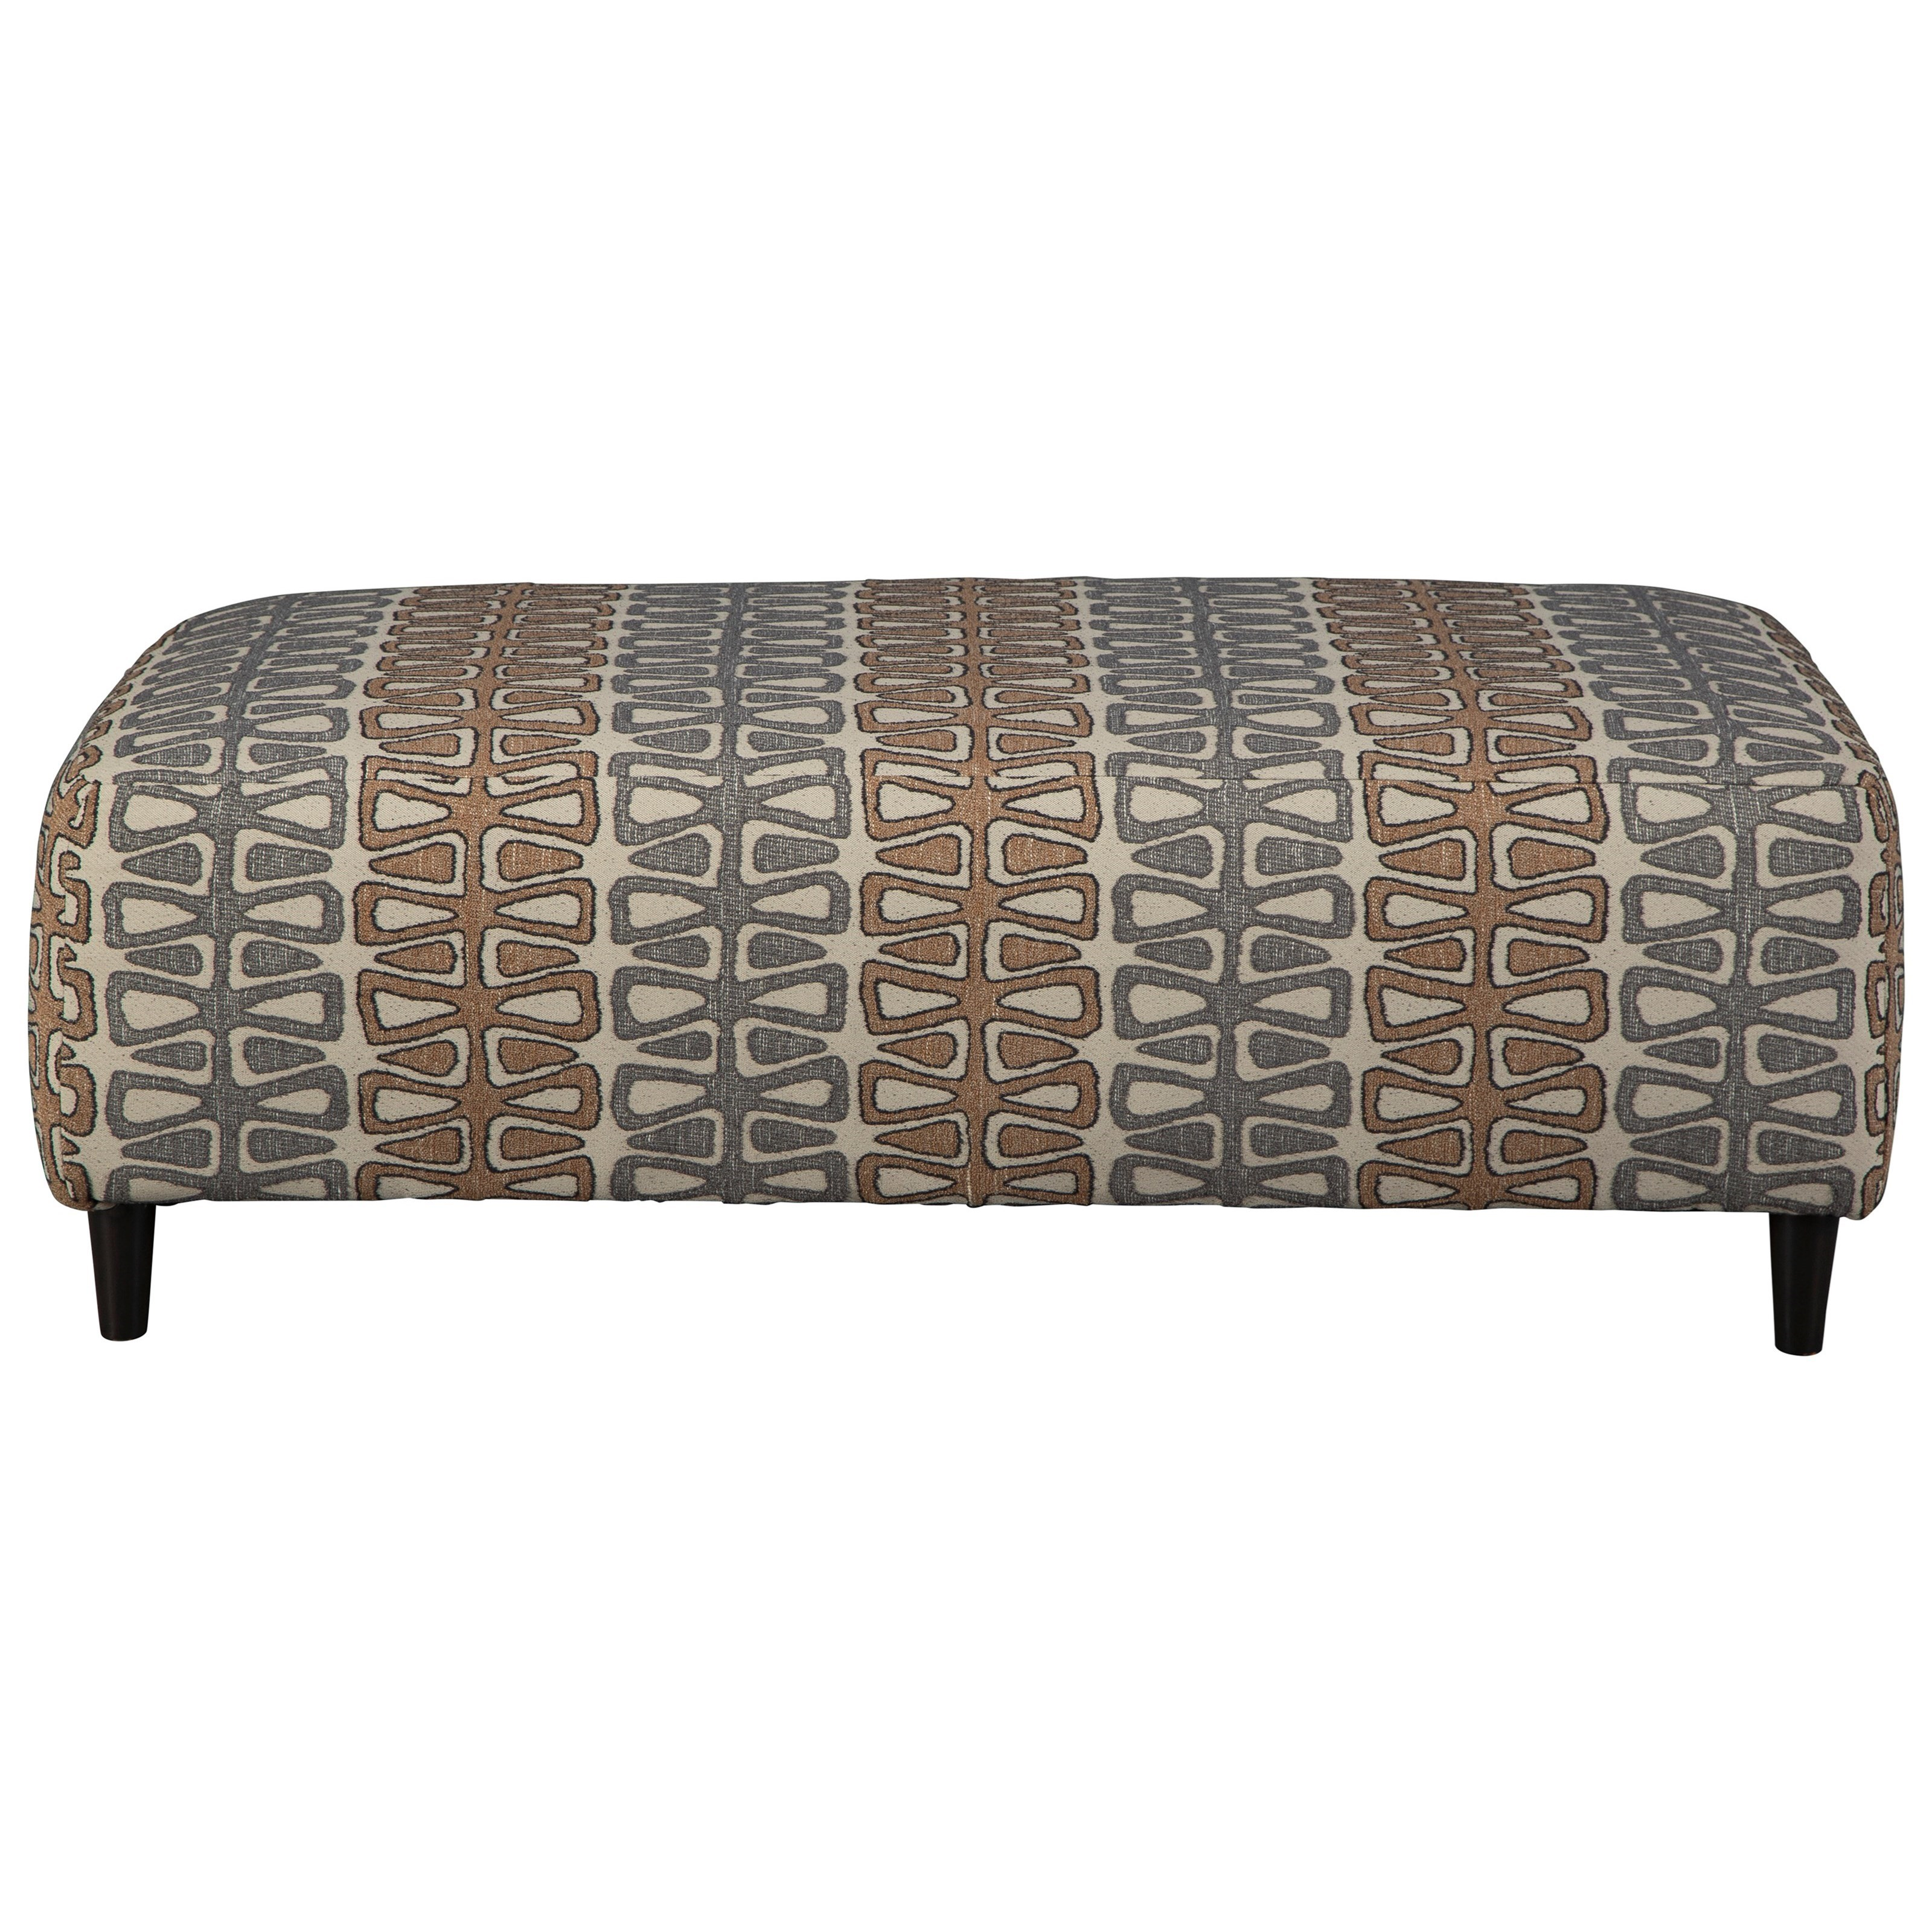 Flintshire Oversized Accent Ottoman by Signature Design by Ashley at Northeast Factory Direct